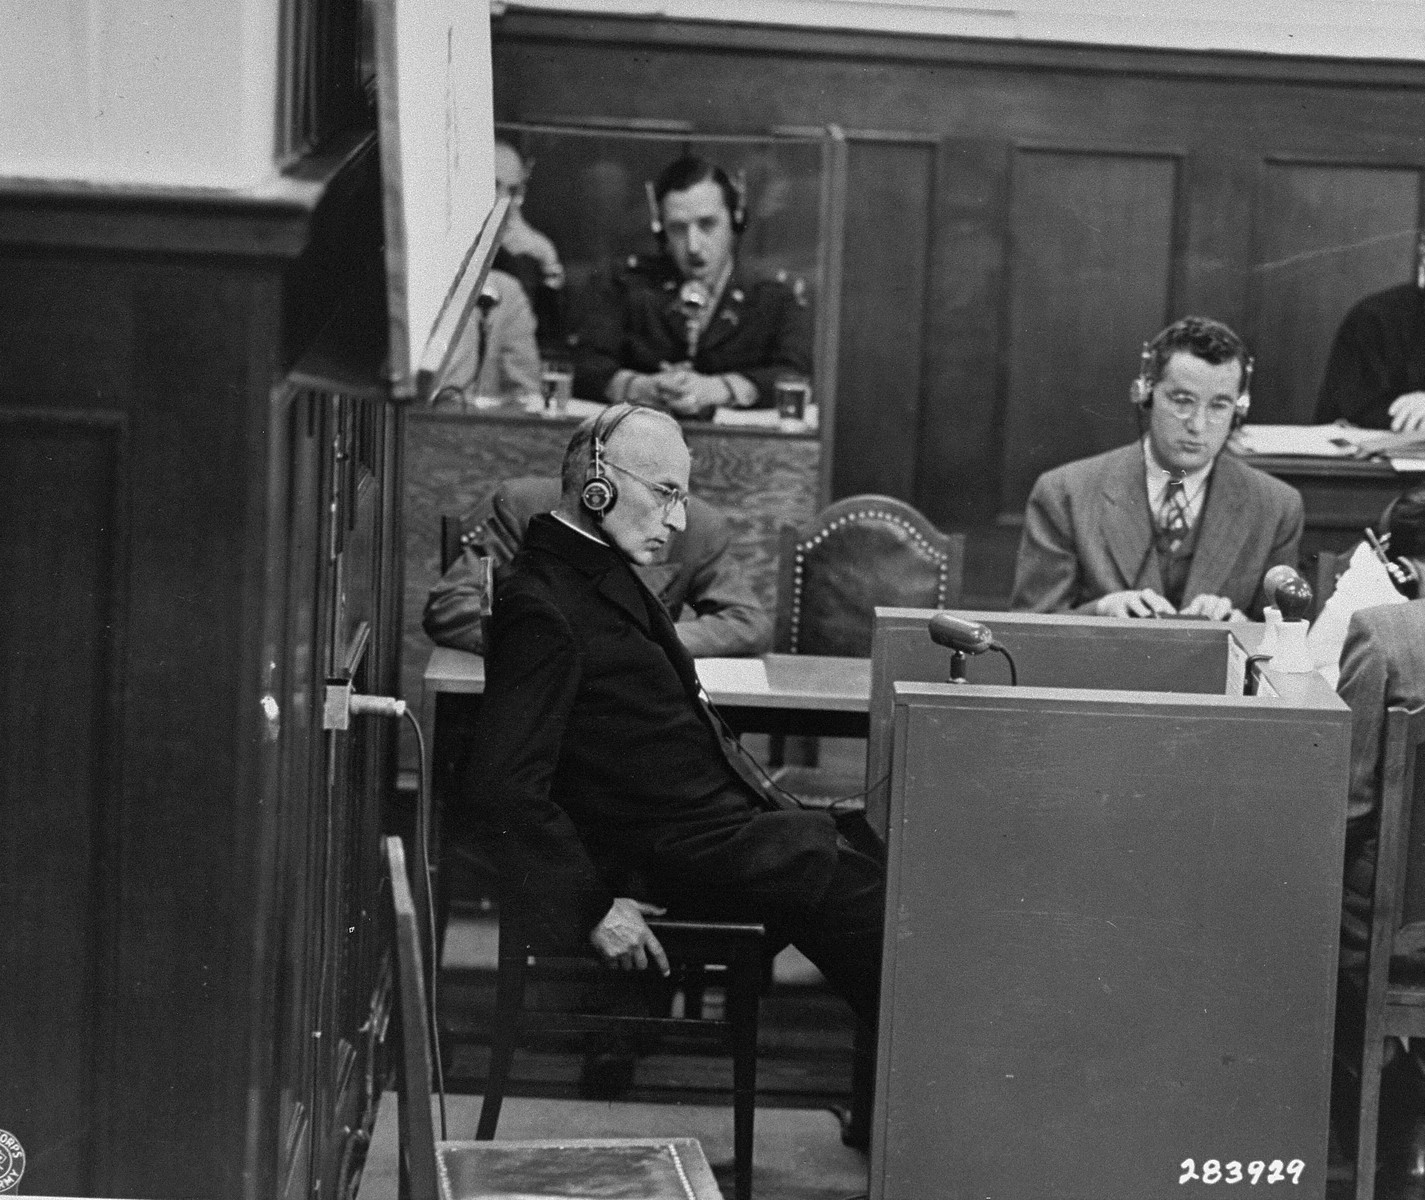 Benedict Wein, a priest from Amberg prison, gives testimony as a witness for the prosecution during the Justice Case.  The testimony took place in a room in the Palace of Justice outside the main courtroom.